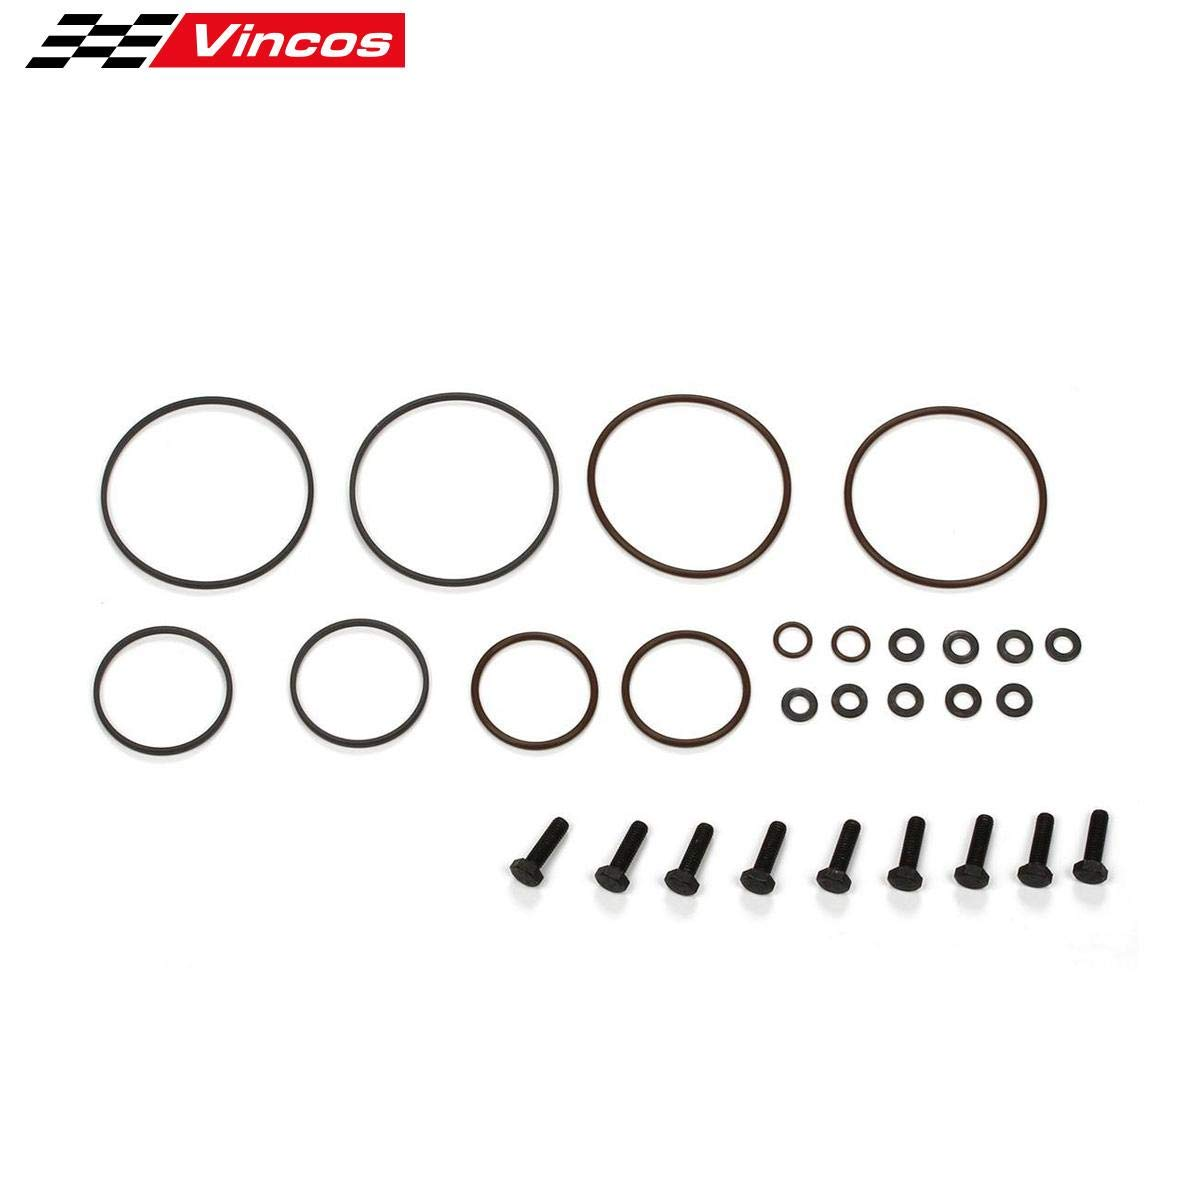 DOUBLE TWIN DUAL VANOS SEALS REPAIR KIT Replacement For BMW 3 SERIES E46 M52 M54 M56